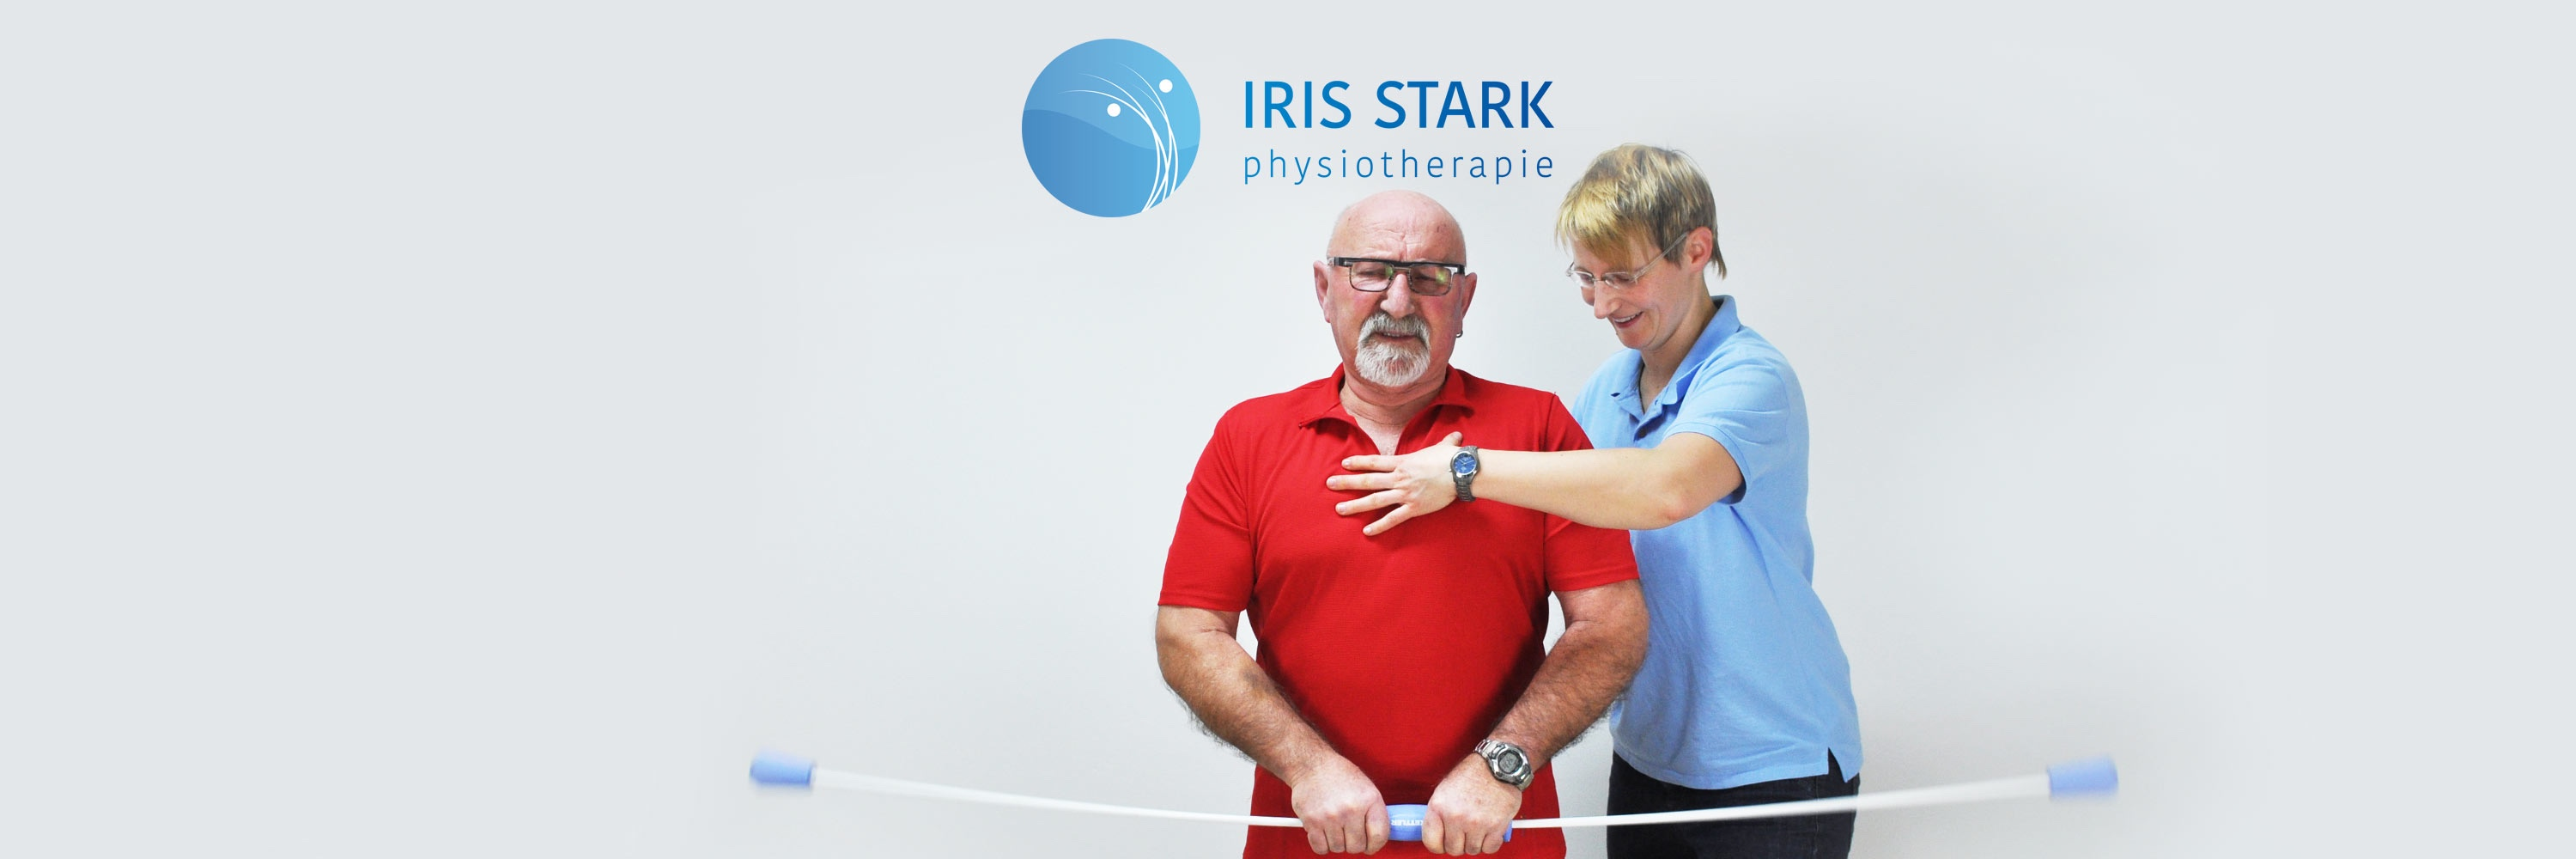 Physiotherapie in Bamberg - Iris Stark